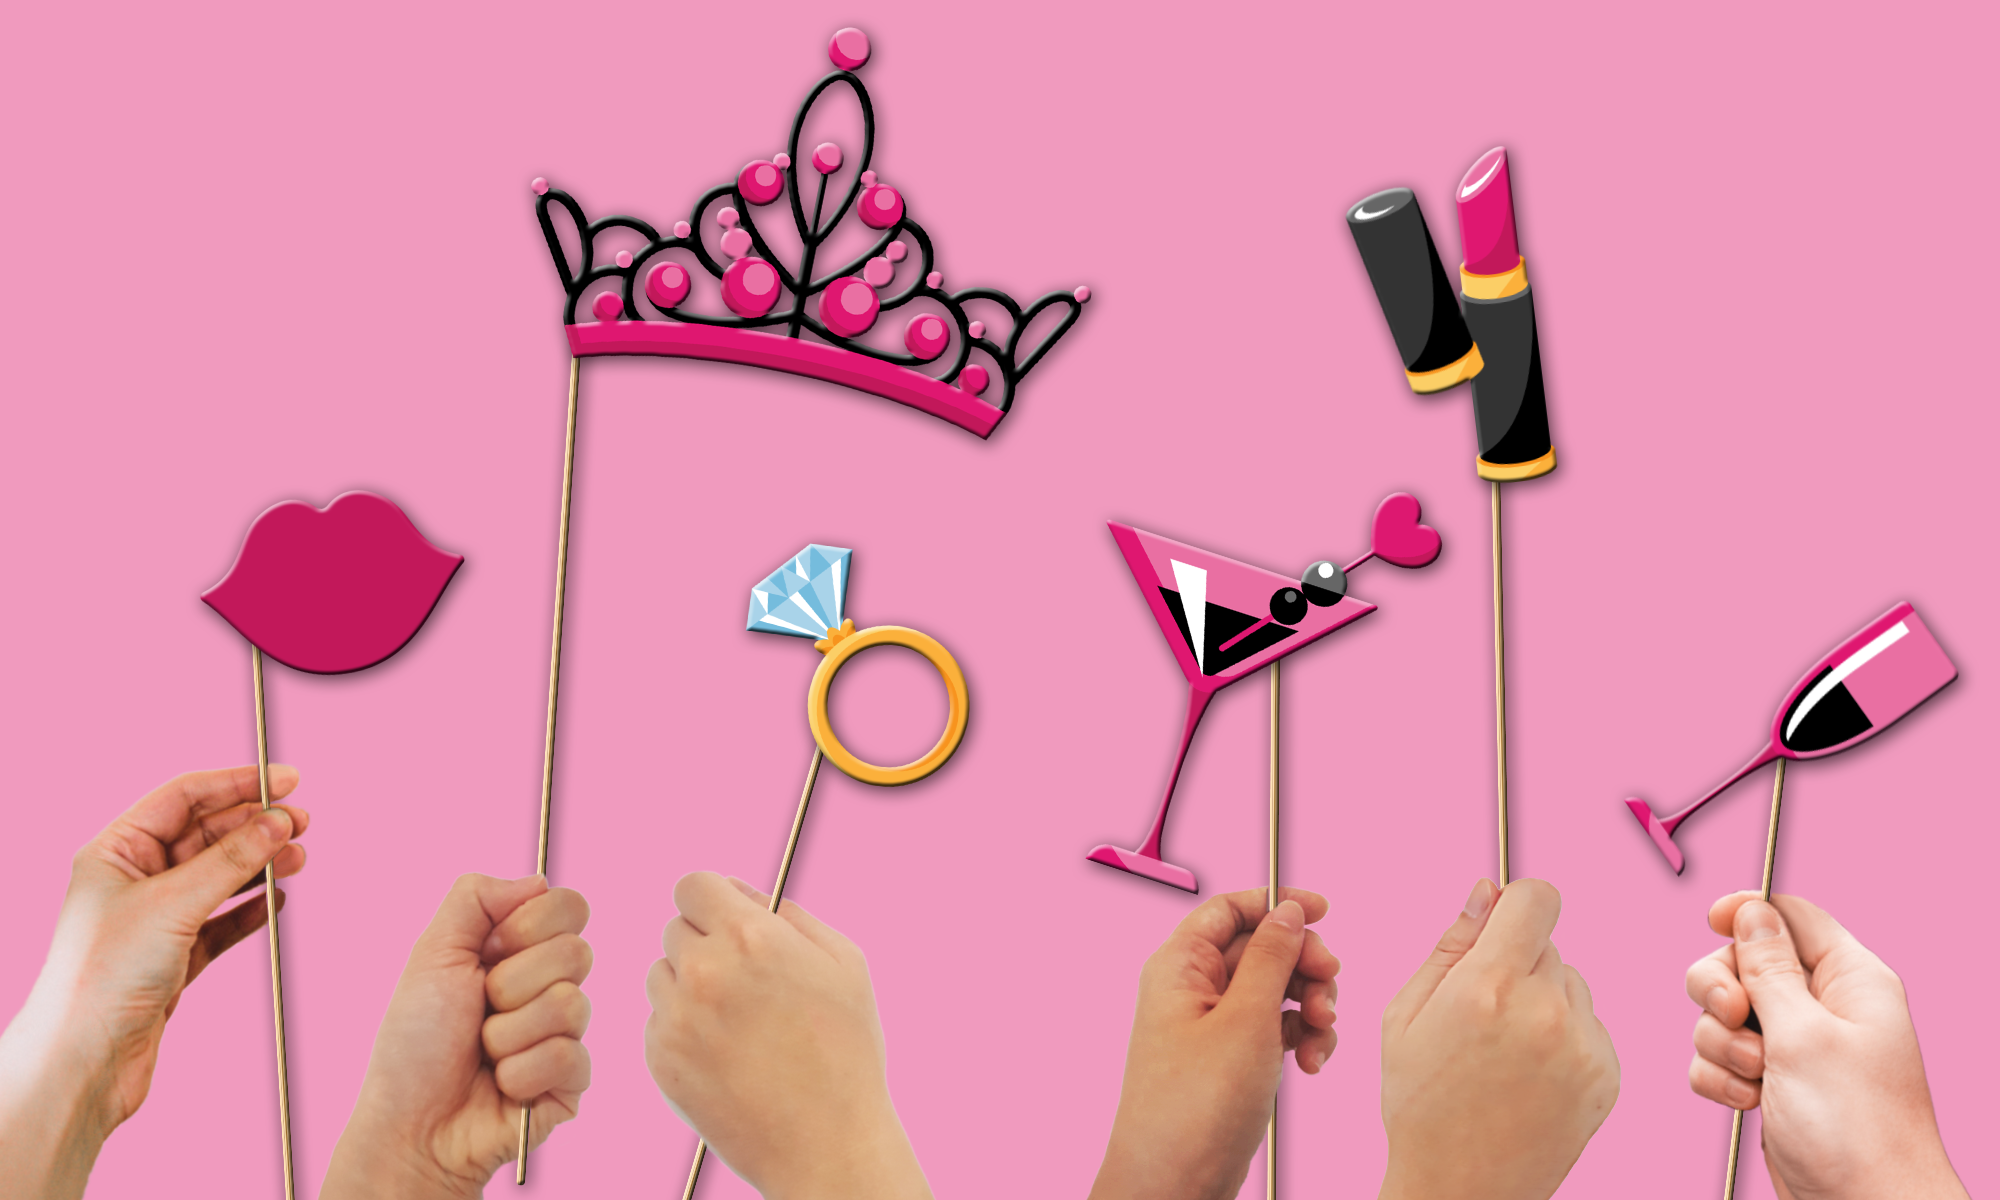 Bachelorette Party Photo Booth Props 20pcs Assembled - BirthdayGalore.com